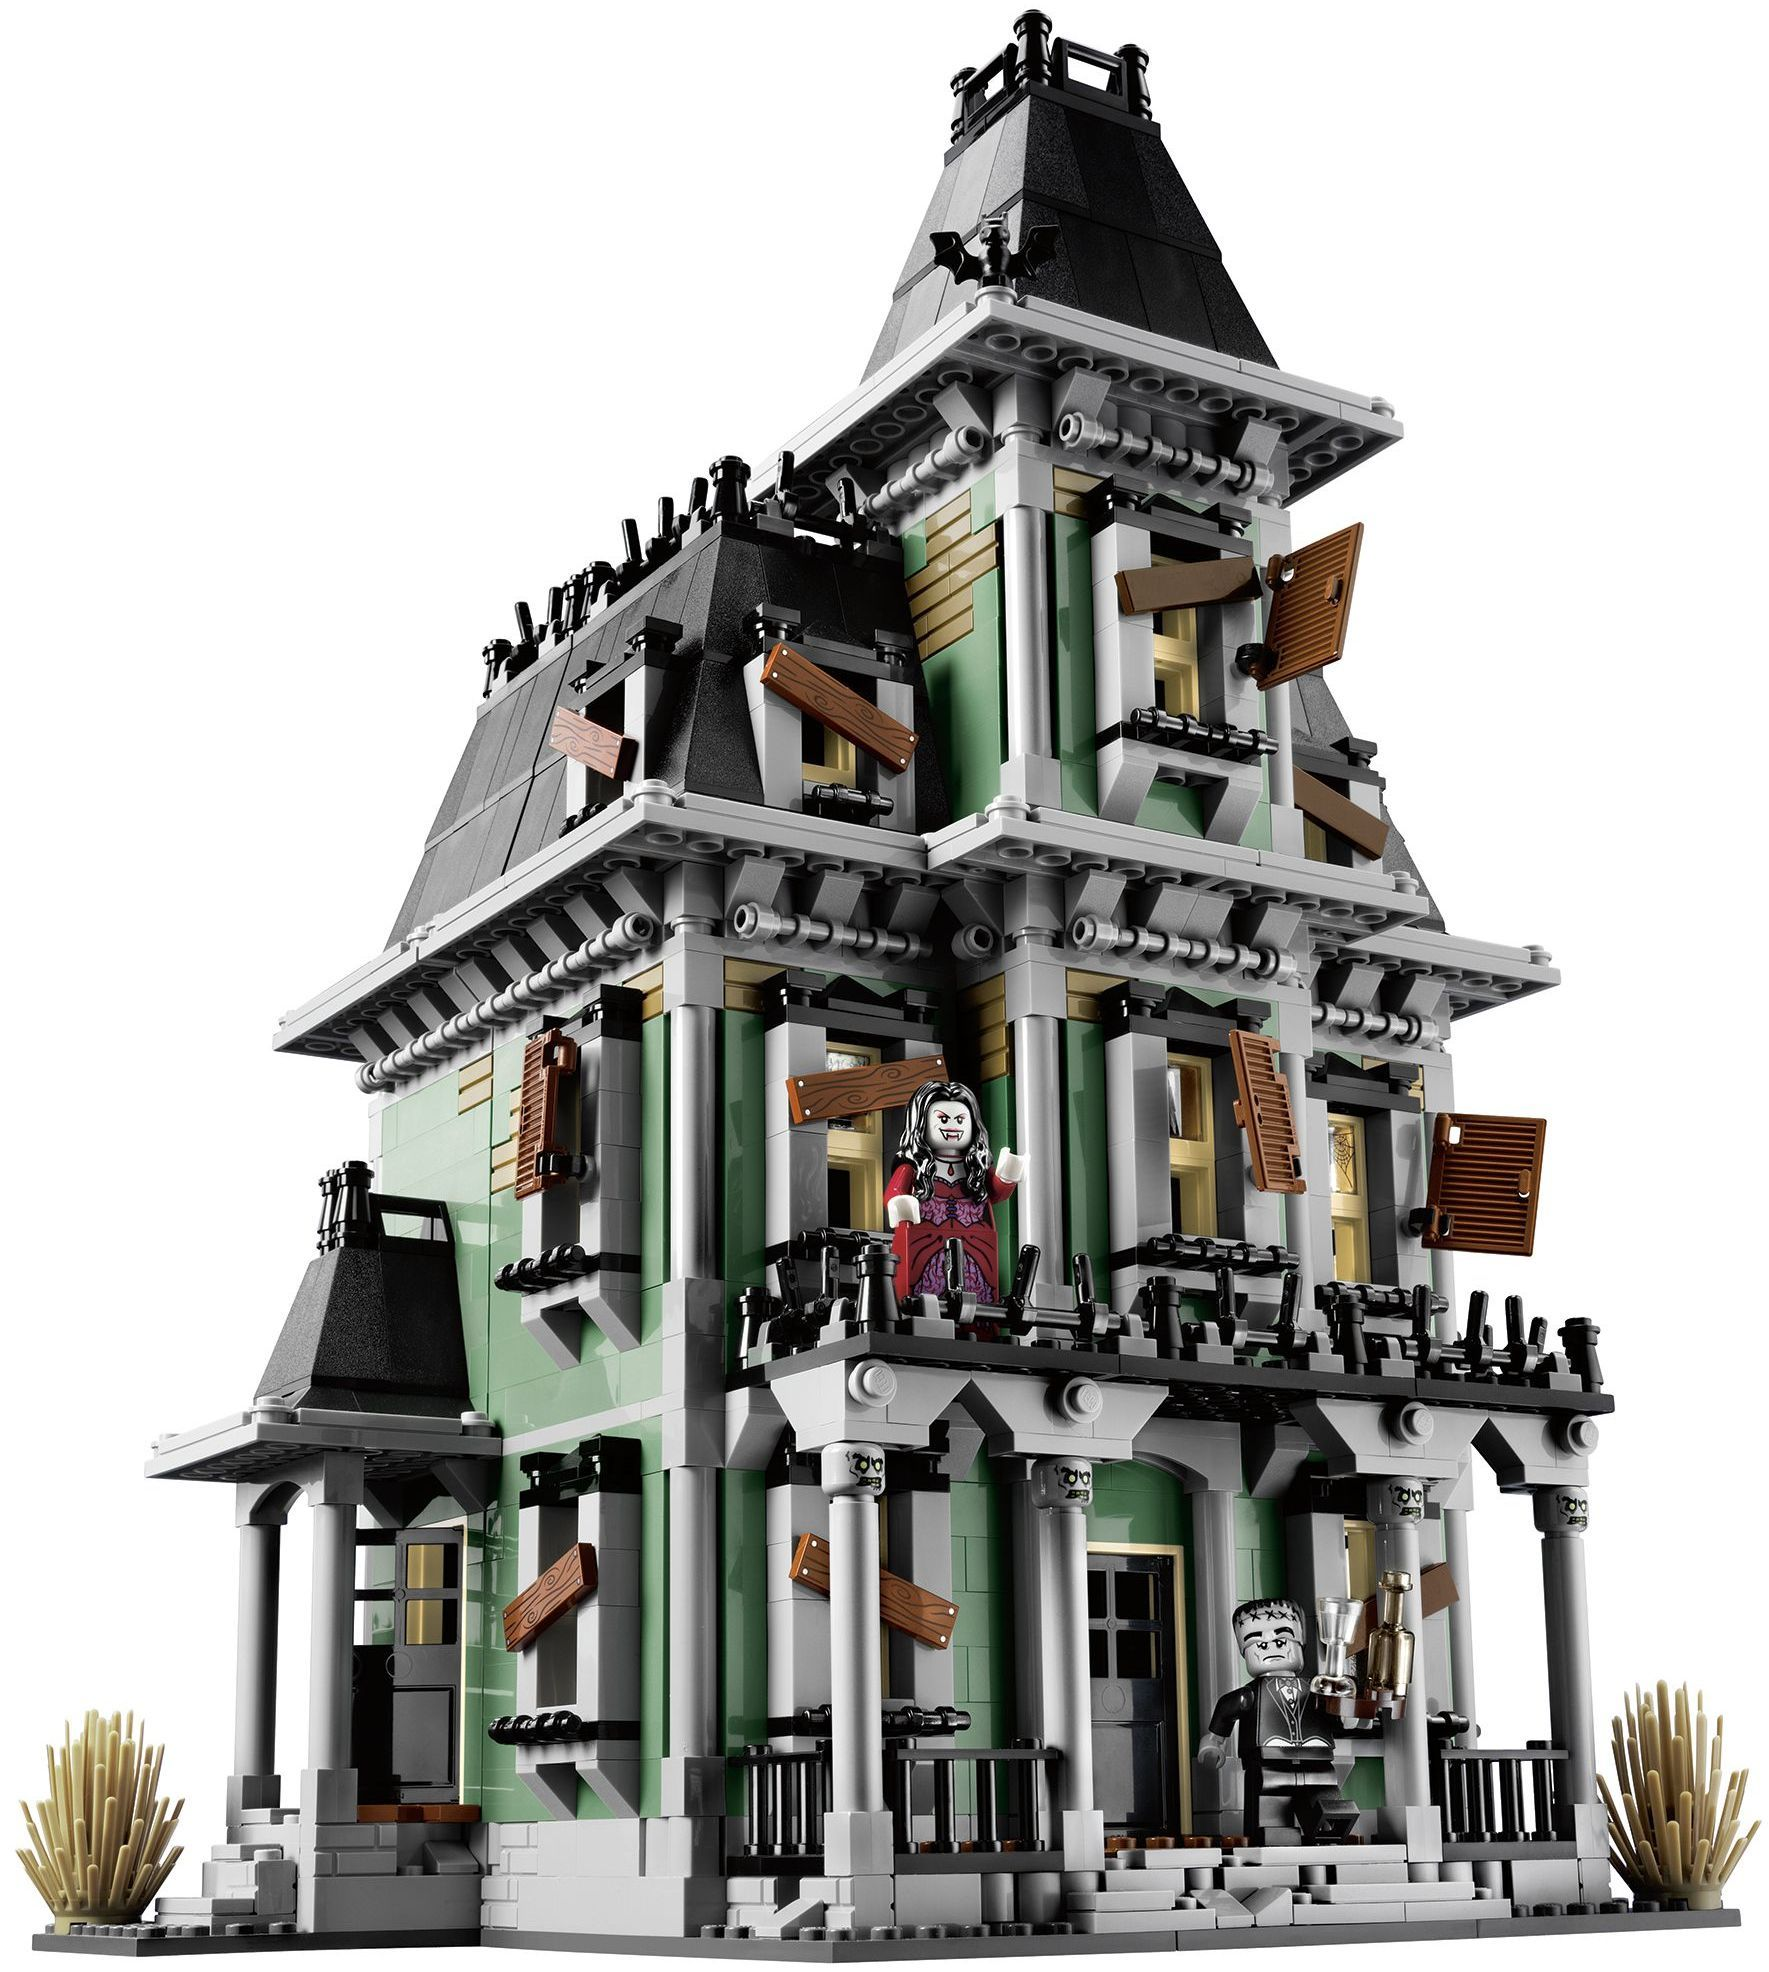 LEGO 10228 Haunted House Investment Potential that is